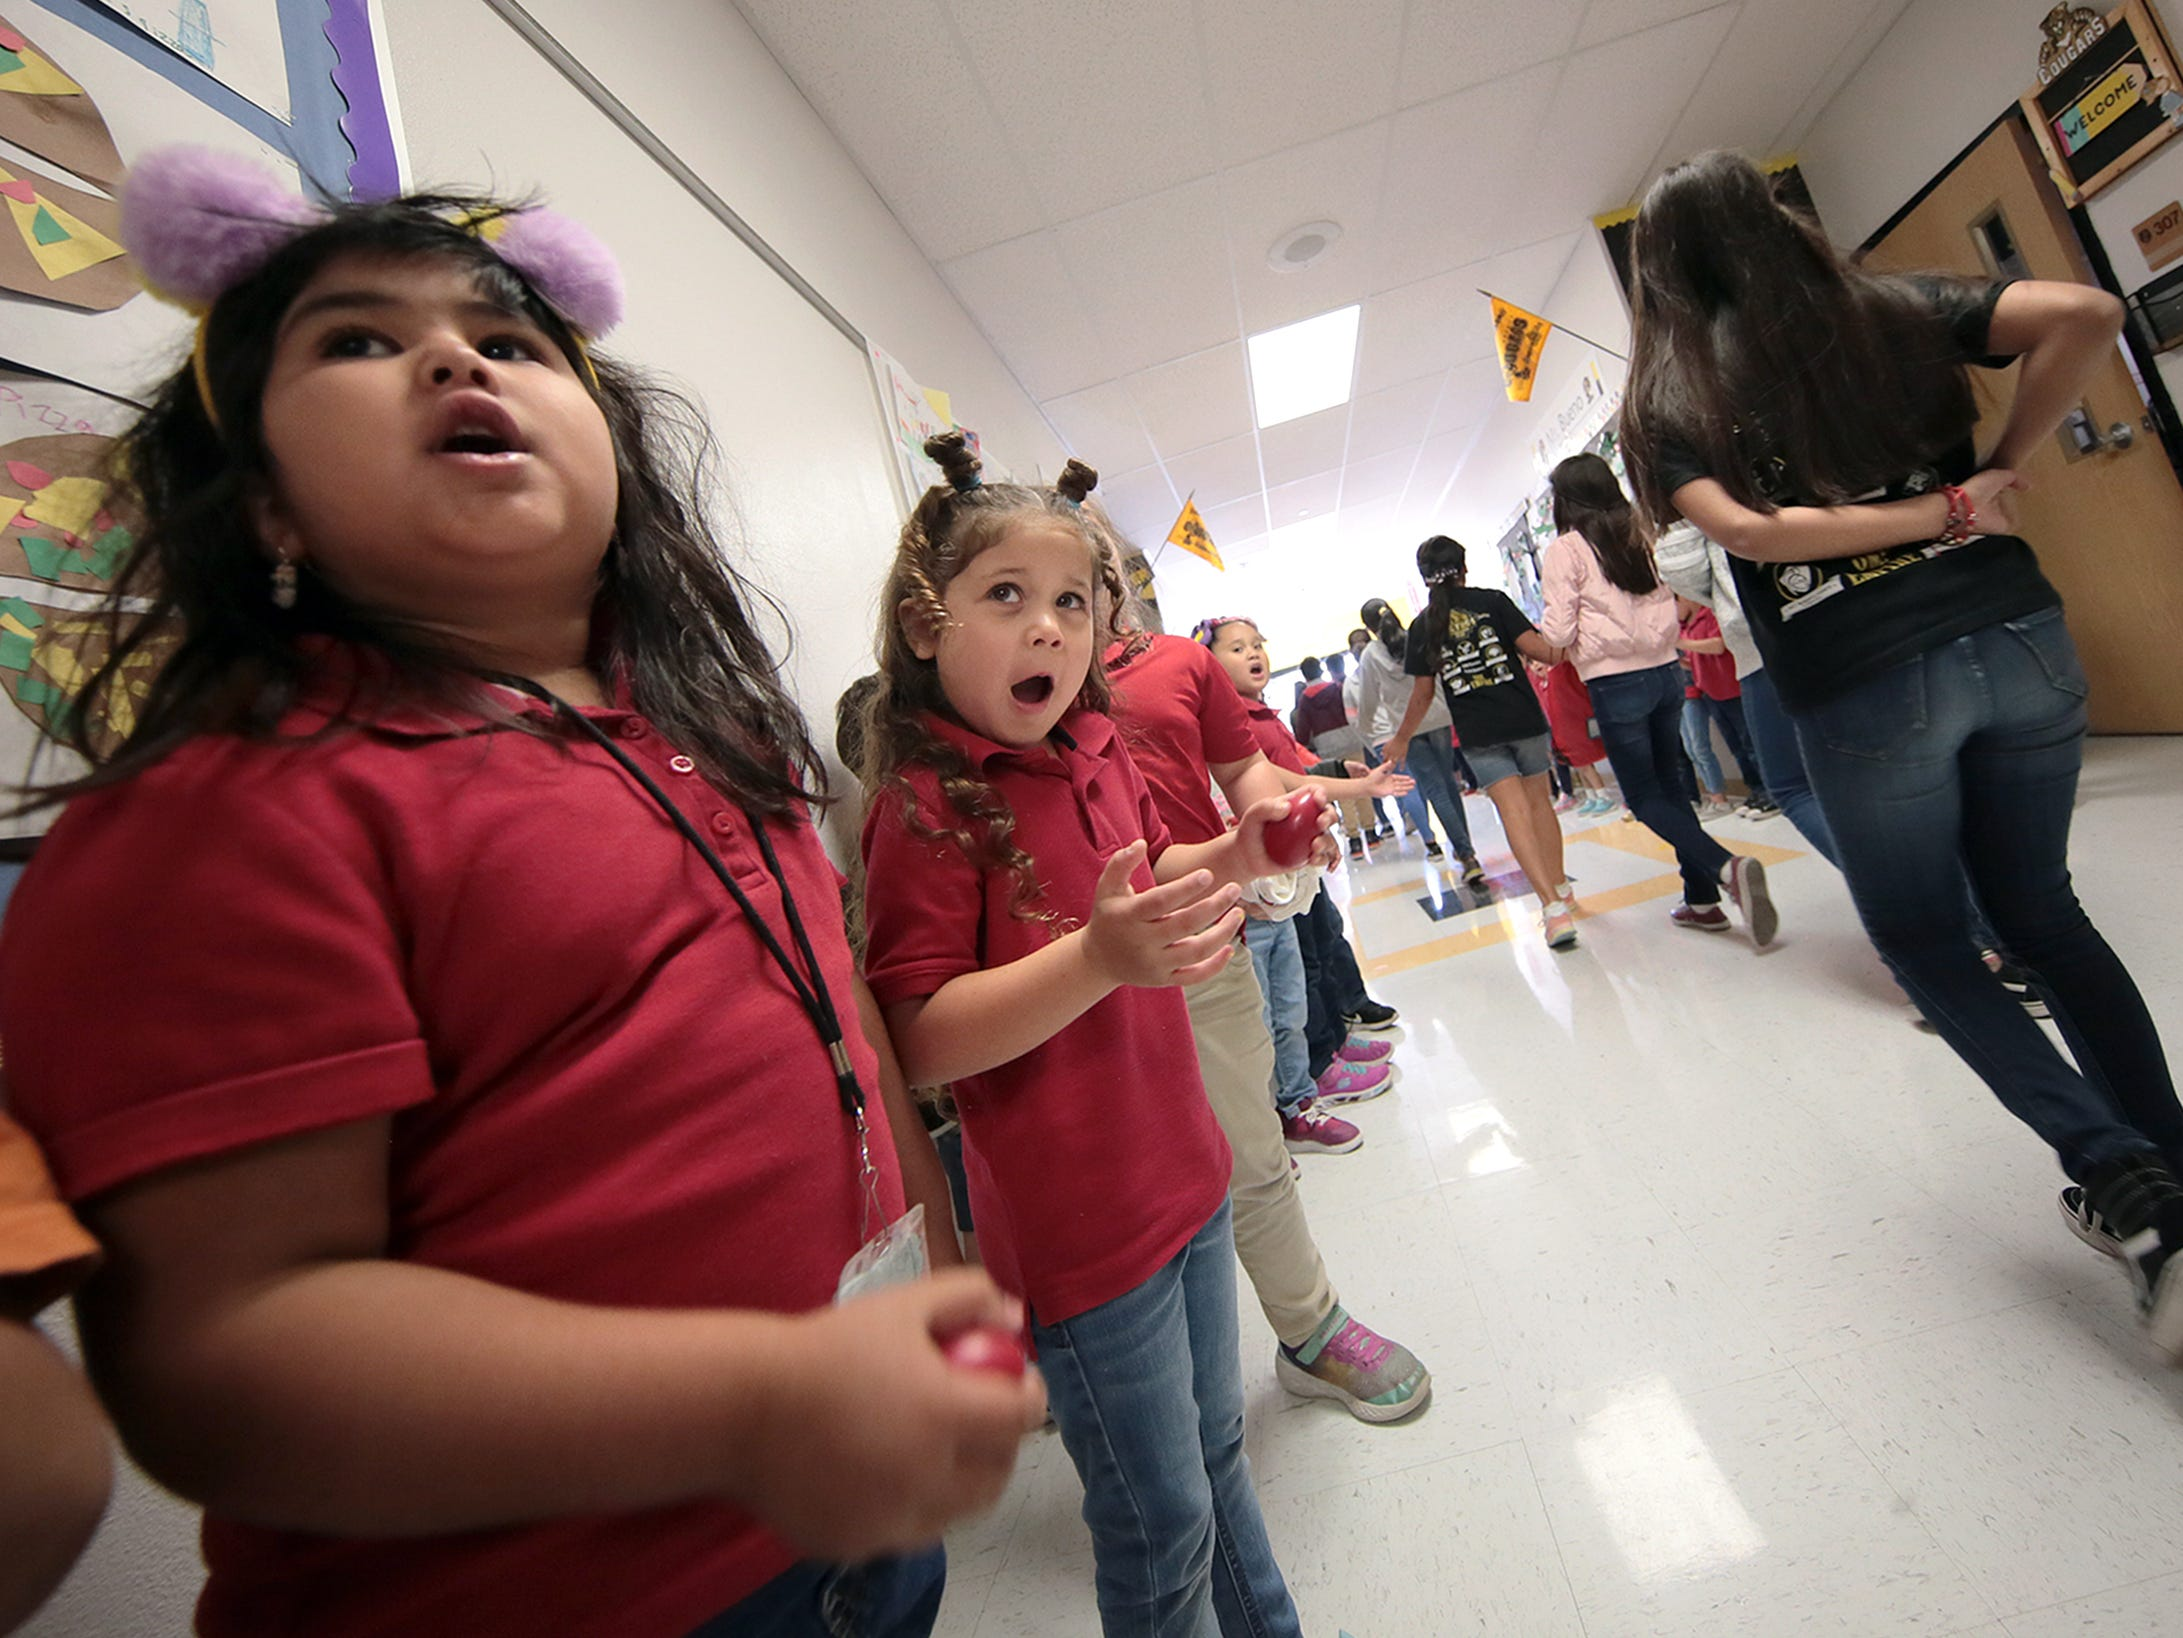 Hurshel Antwine Elementary School held a STAAR test rally and parade Friday to help students destress ahead of the grueling test.